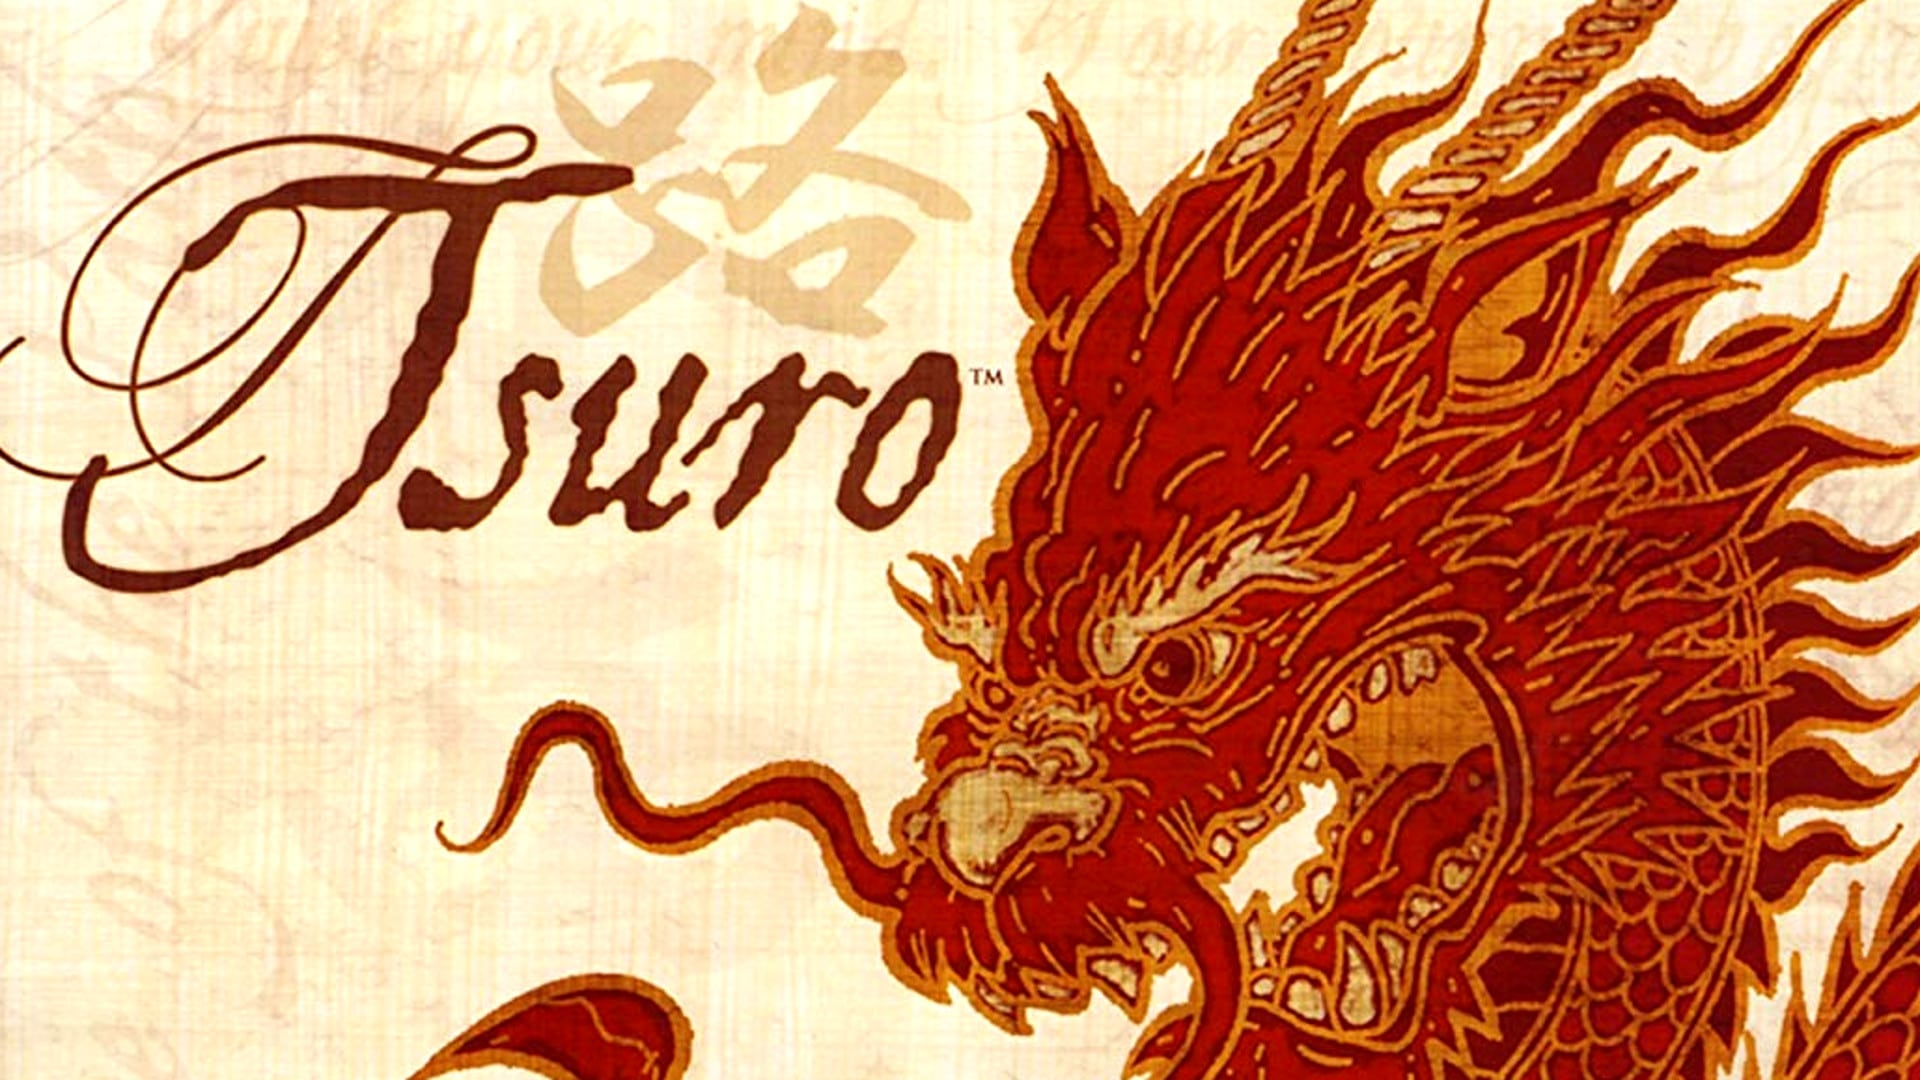 How to play Tsuro?